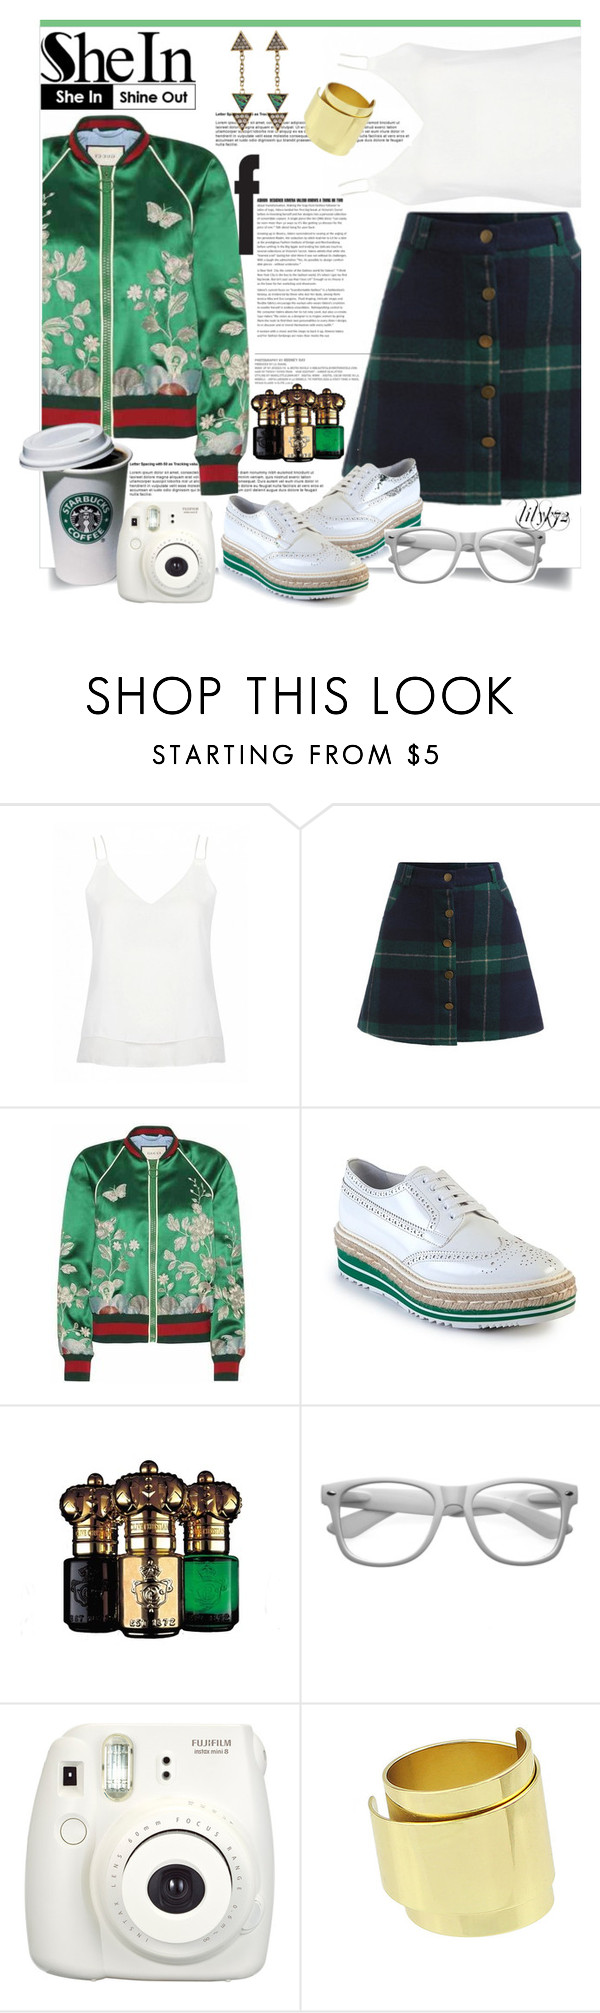 """""""Shein.com contest"""" by lilyk72 ❤ liked on Polyvore featuring Gucci, Prada, Clive Christian, Retrò, skirt, plaid, Sheinside and shein"""